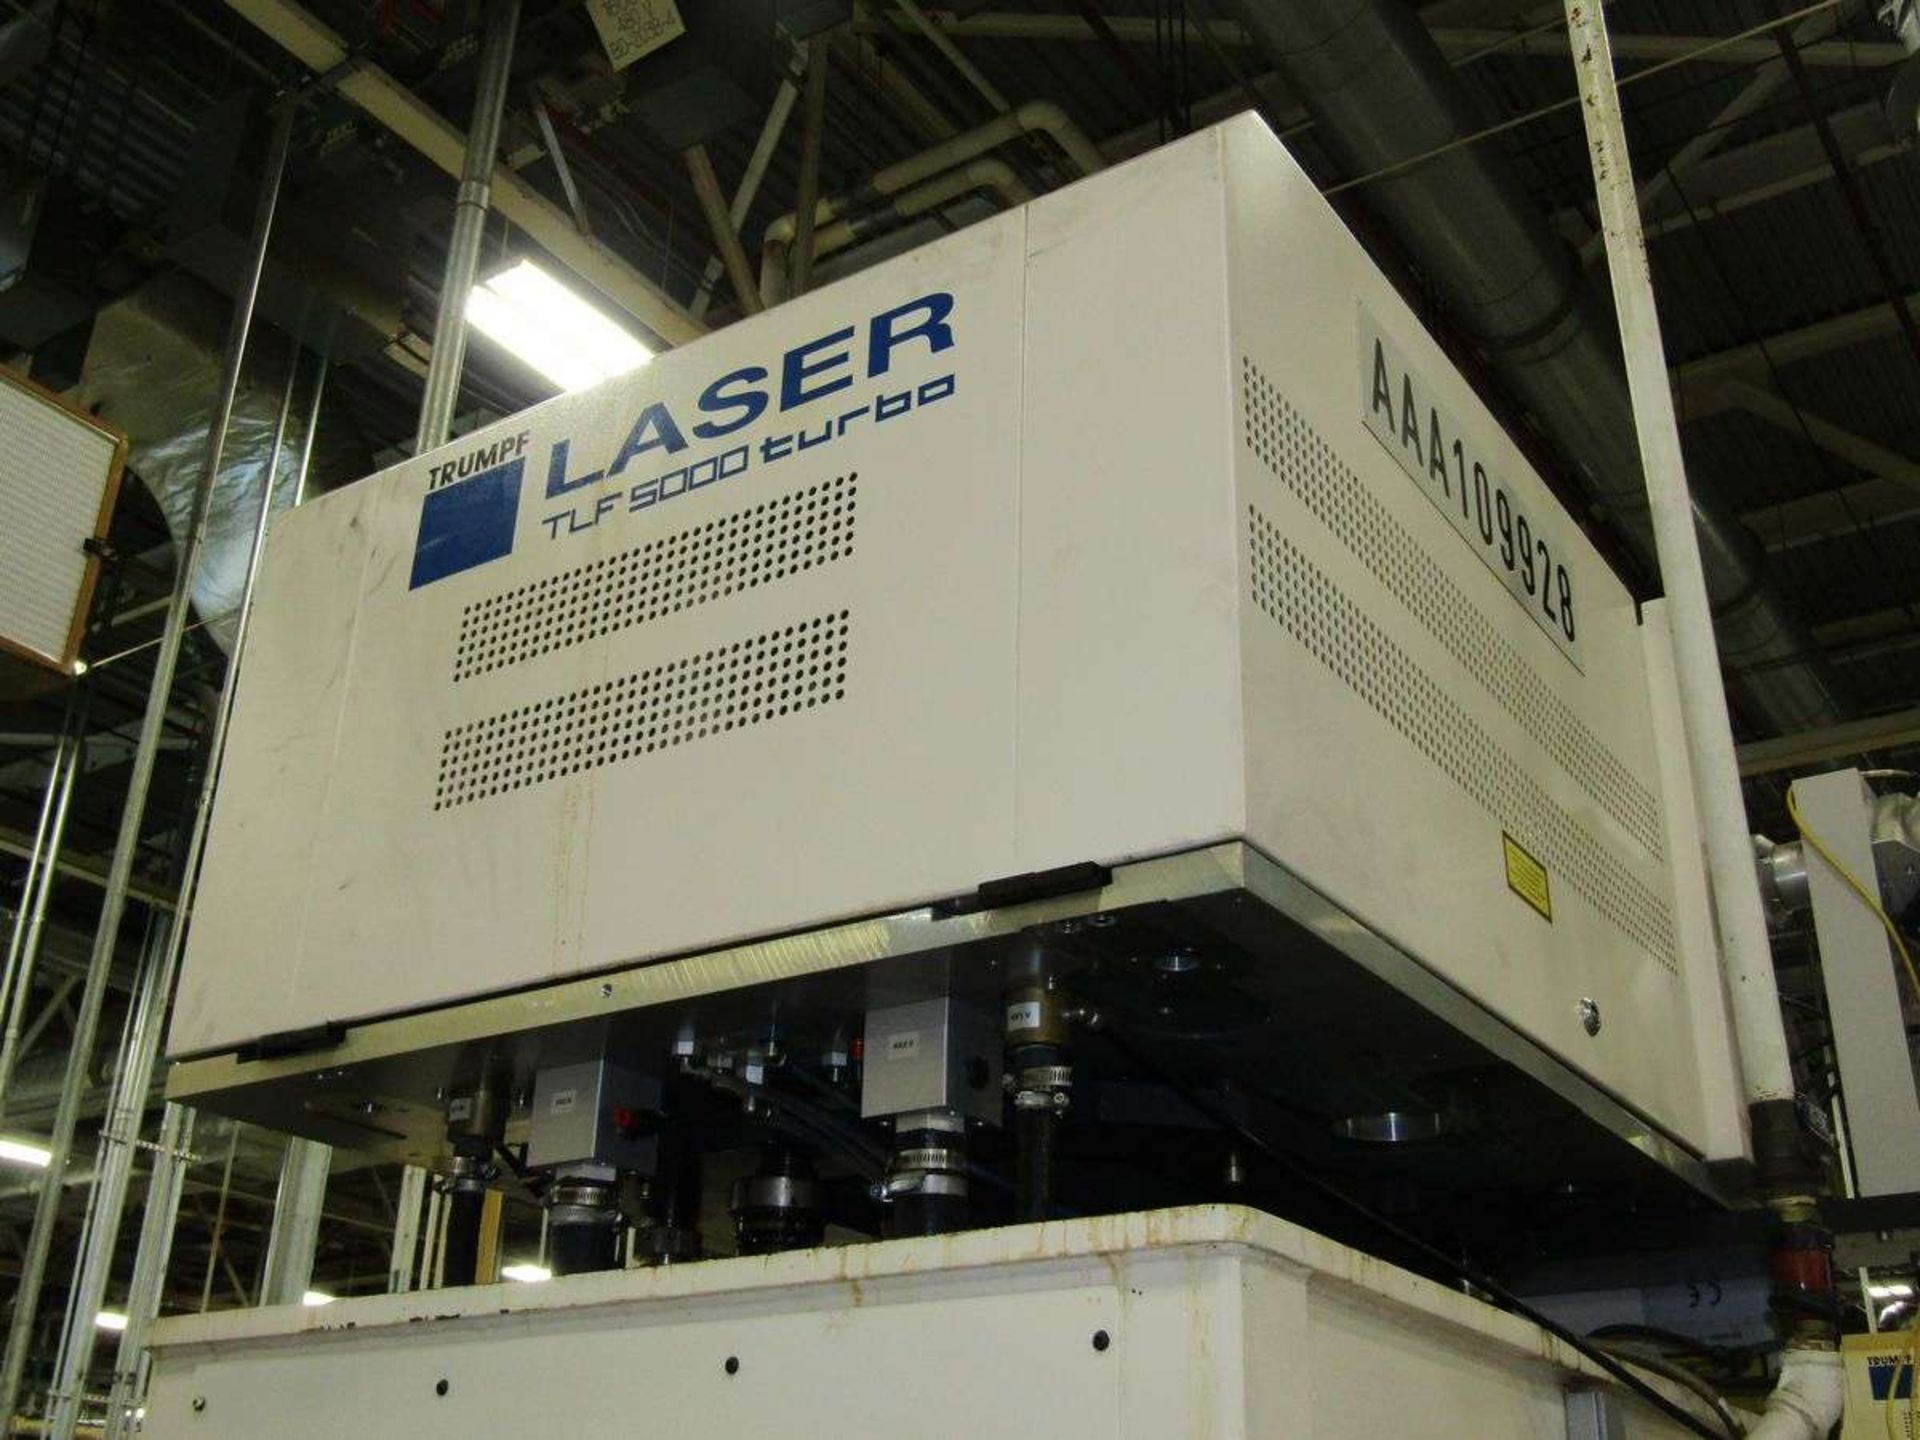 Lot 25A - Trumpf TLF5000 Turbo Laser Power Supply (only)